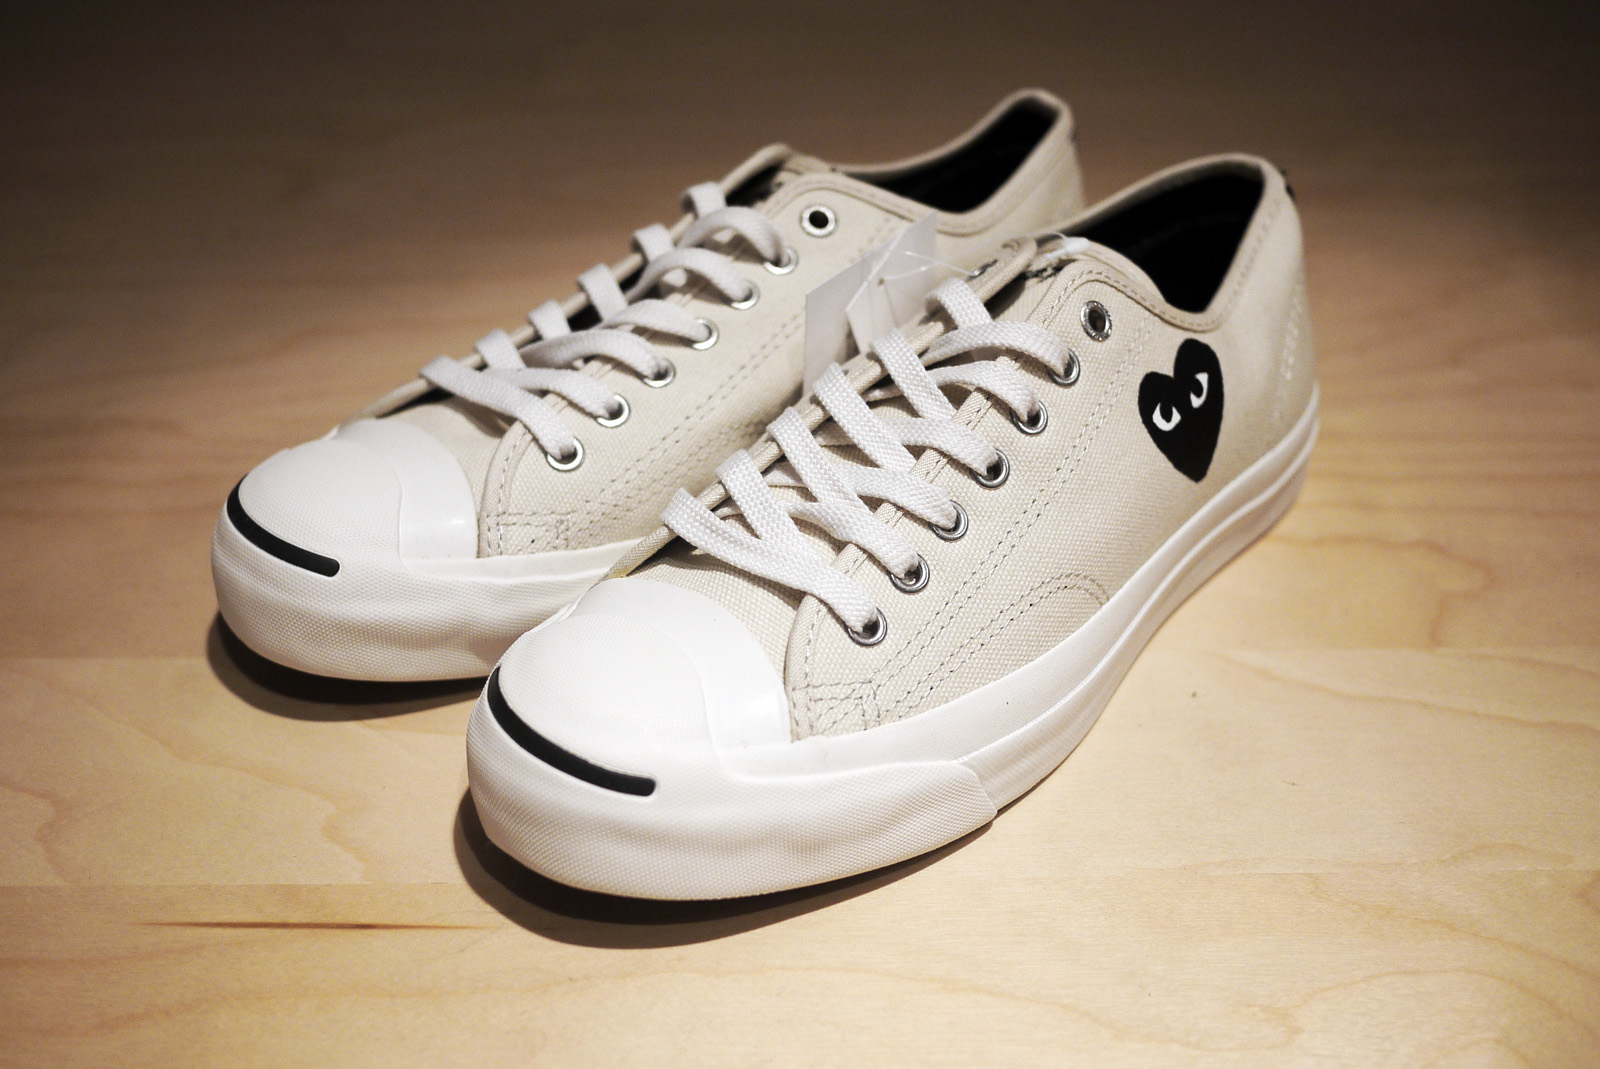 SOLD OUT) Converse Jack Purcell x COMME des GARCONS PLAY  a01023c0c